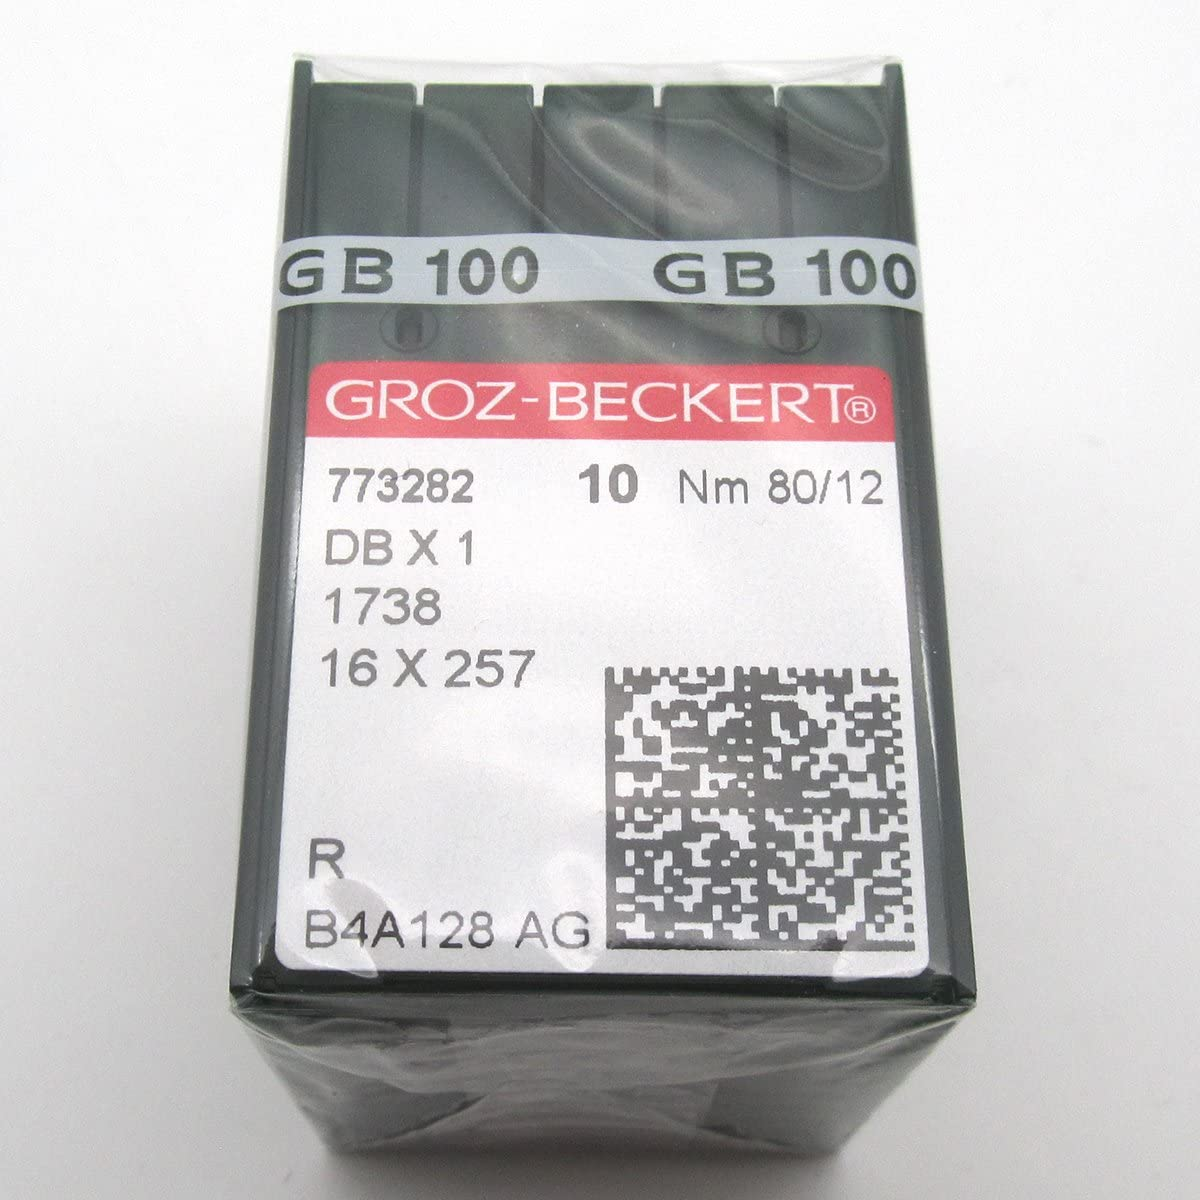 ckpsms Department store GROZ-BECKERT Needle in Clear 100PCS Plastic San Diego Mall Bec Groz Box-